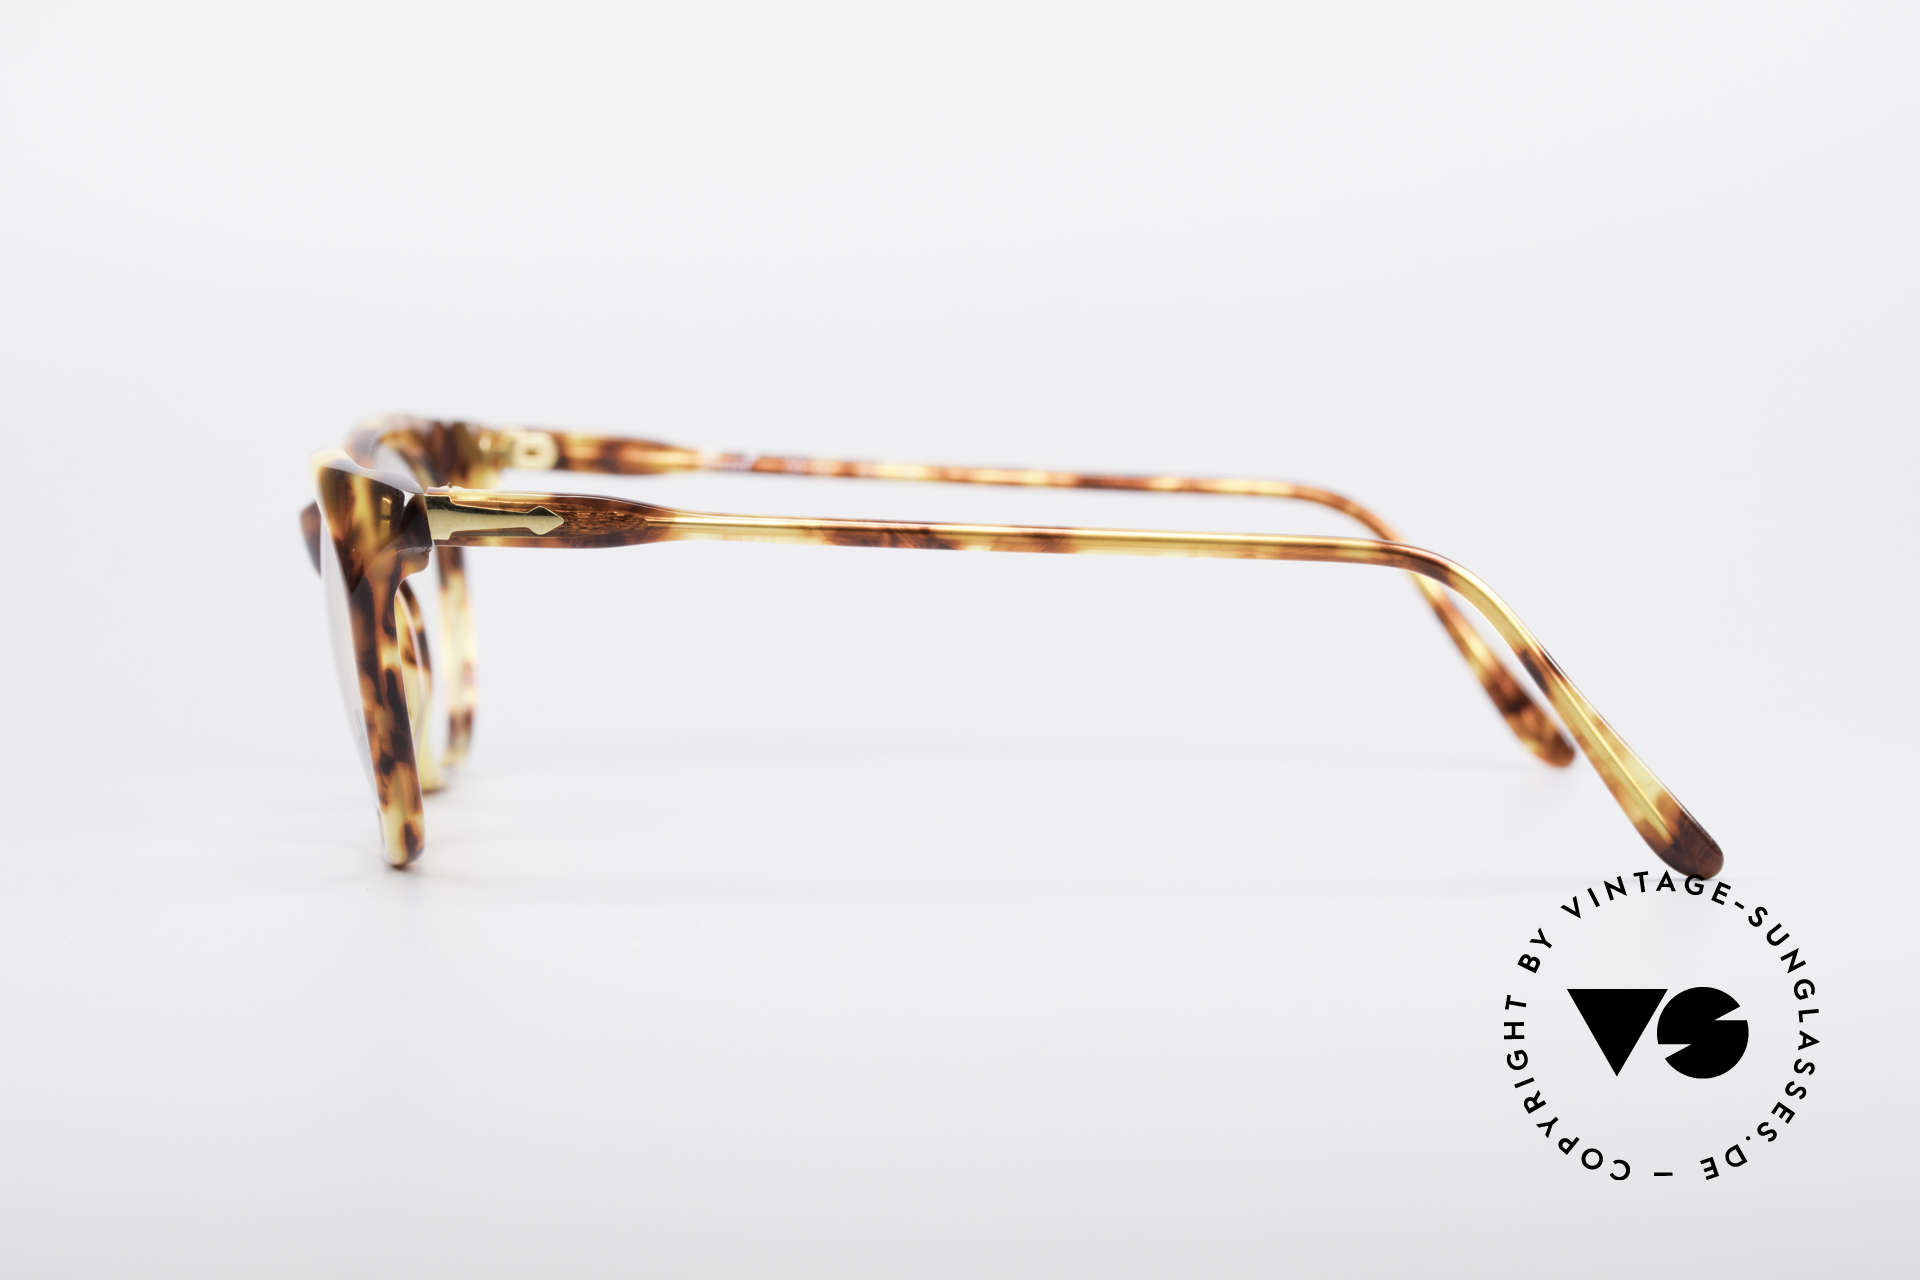 Persol 09194 Classic Vintage Frame, Size: medium, Made for Women